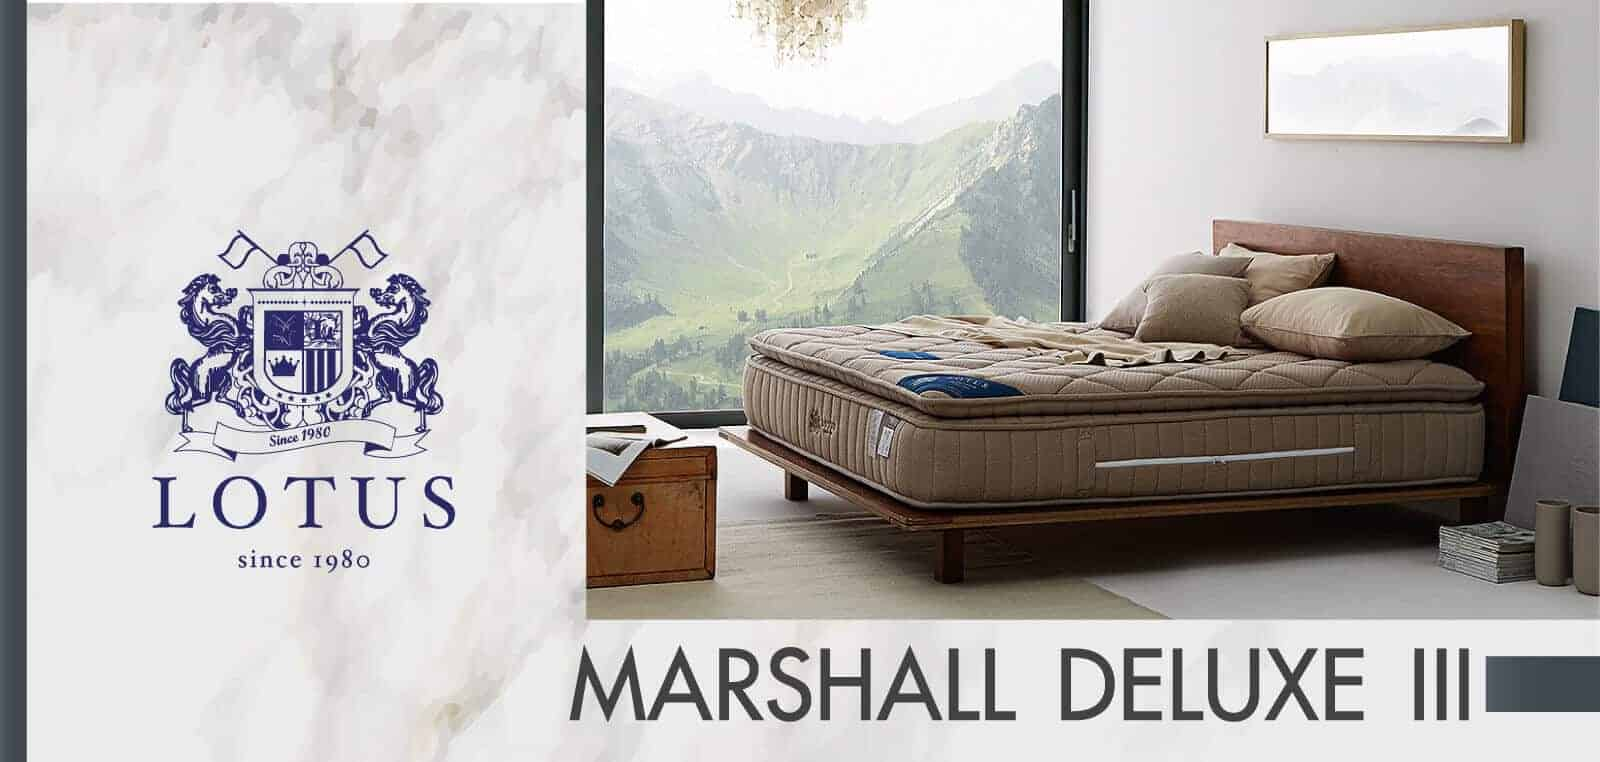 Lotus Foam Spring Mattress Marshall Deluxe III - Good Balance Mattress - Thickness 13 inches - Warranty 10 years 5